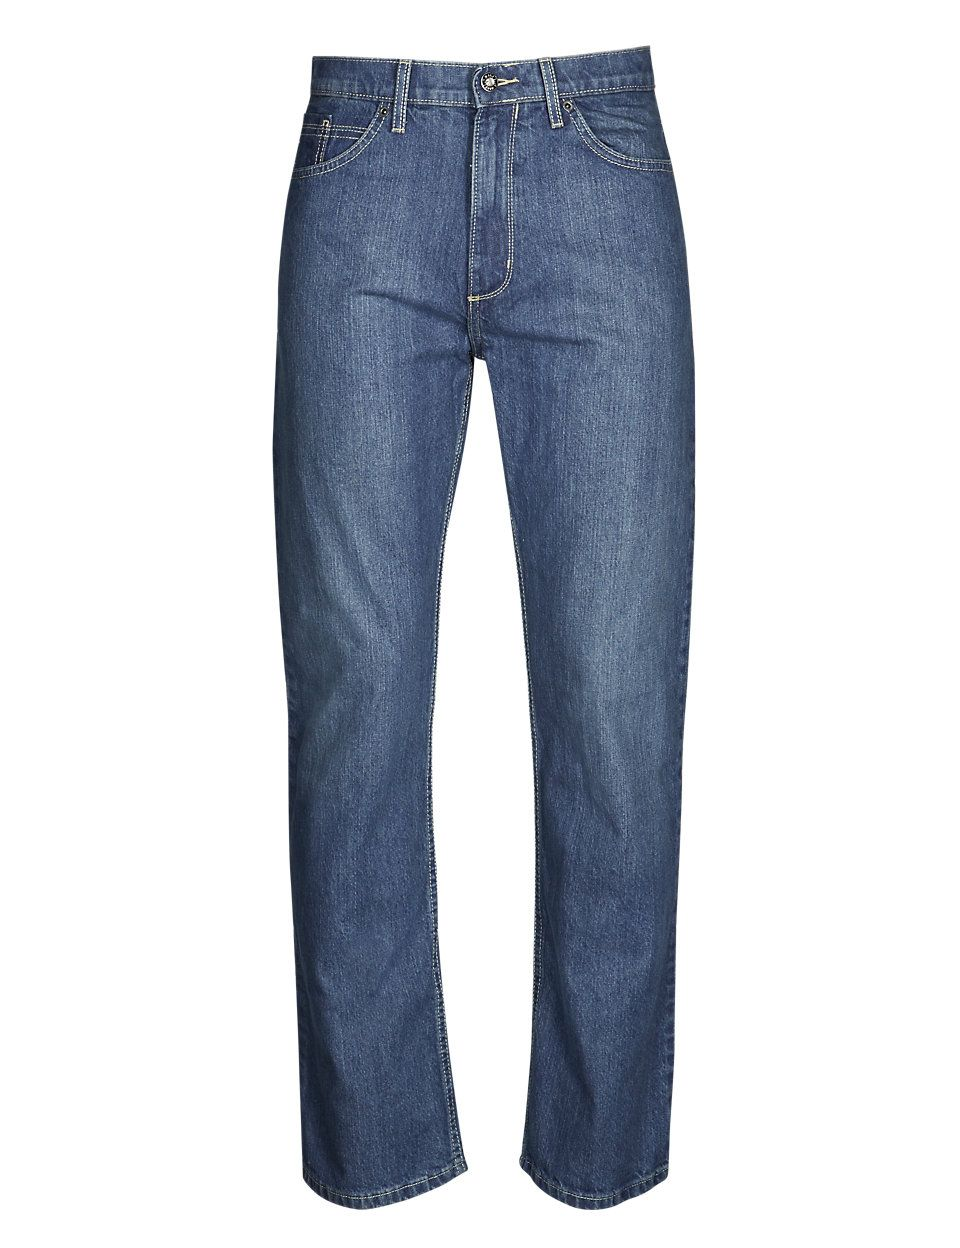 Jeans with Comfort Stretch | M&S